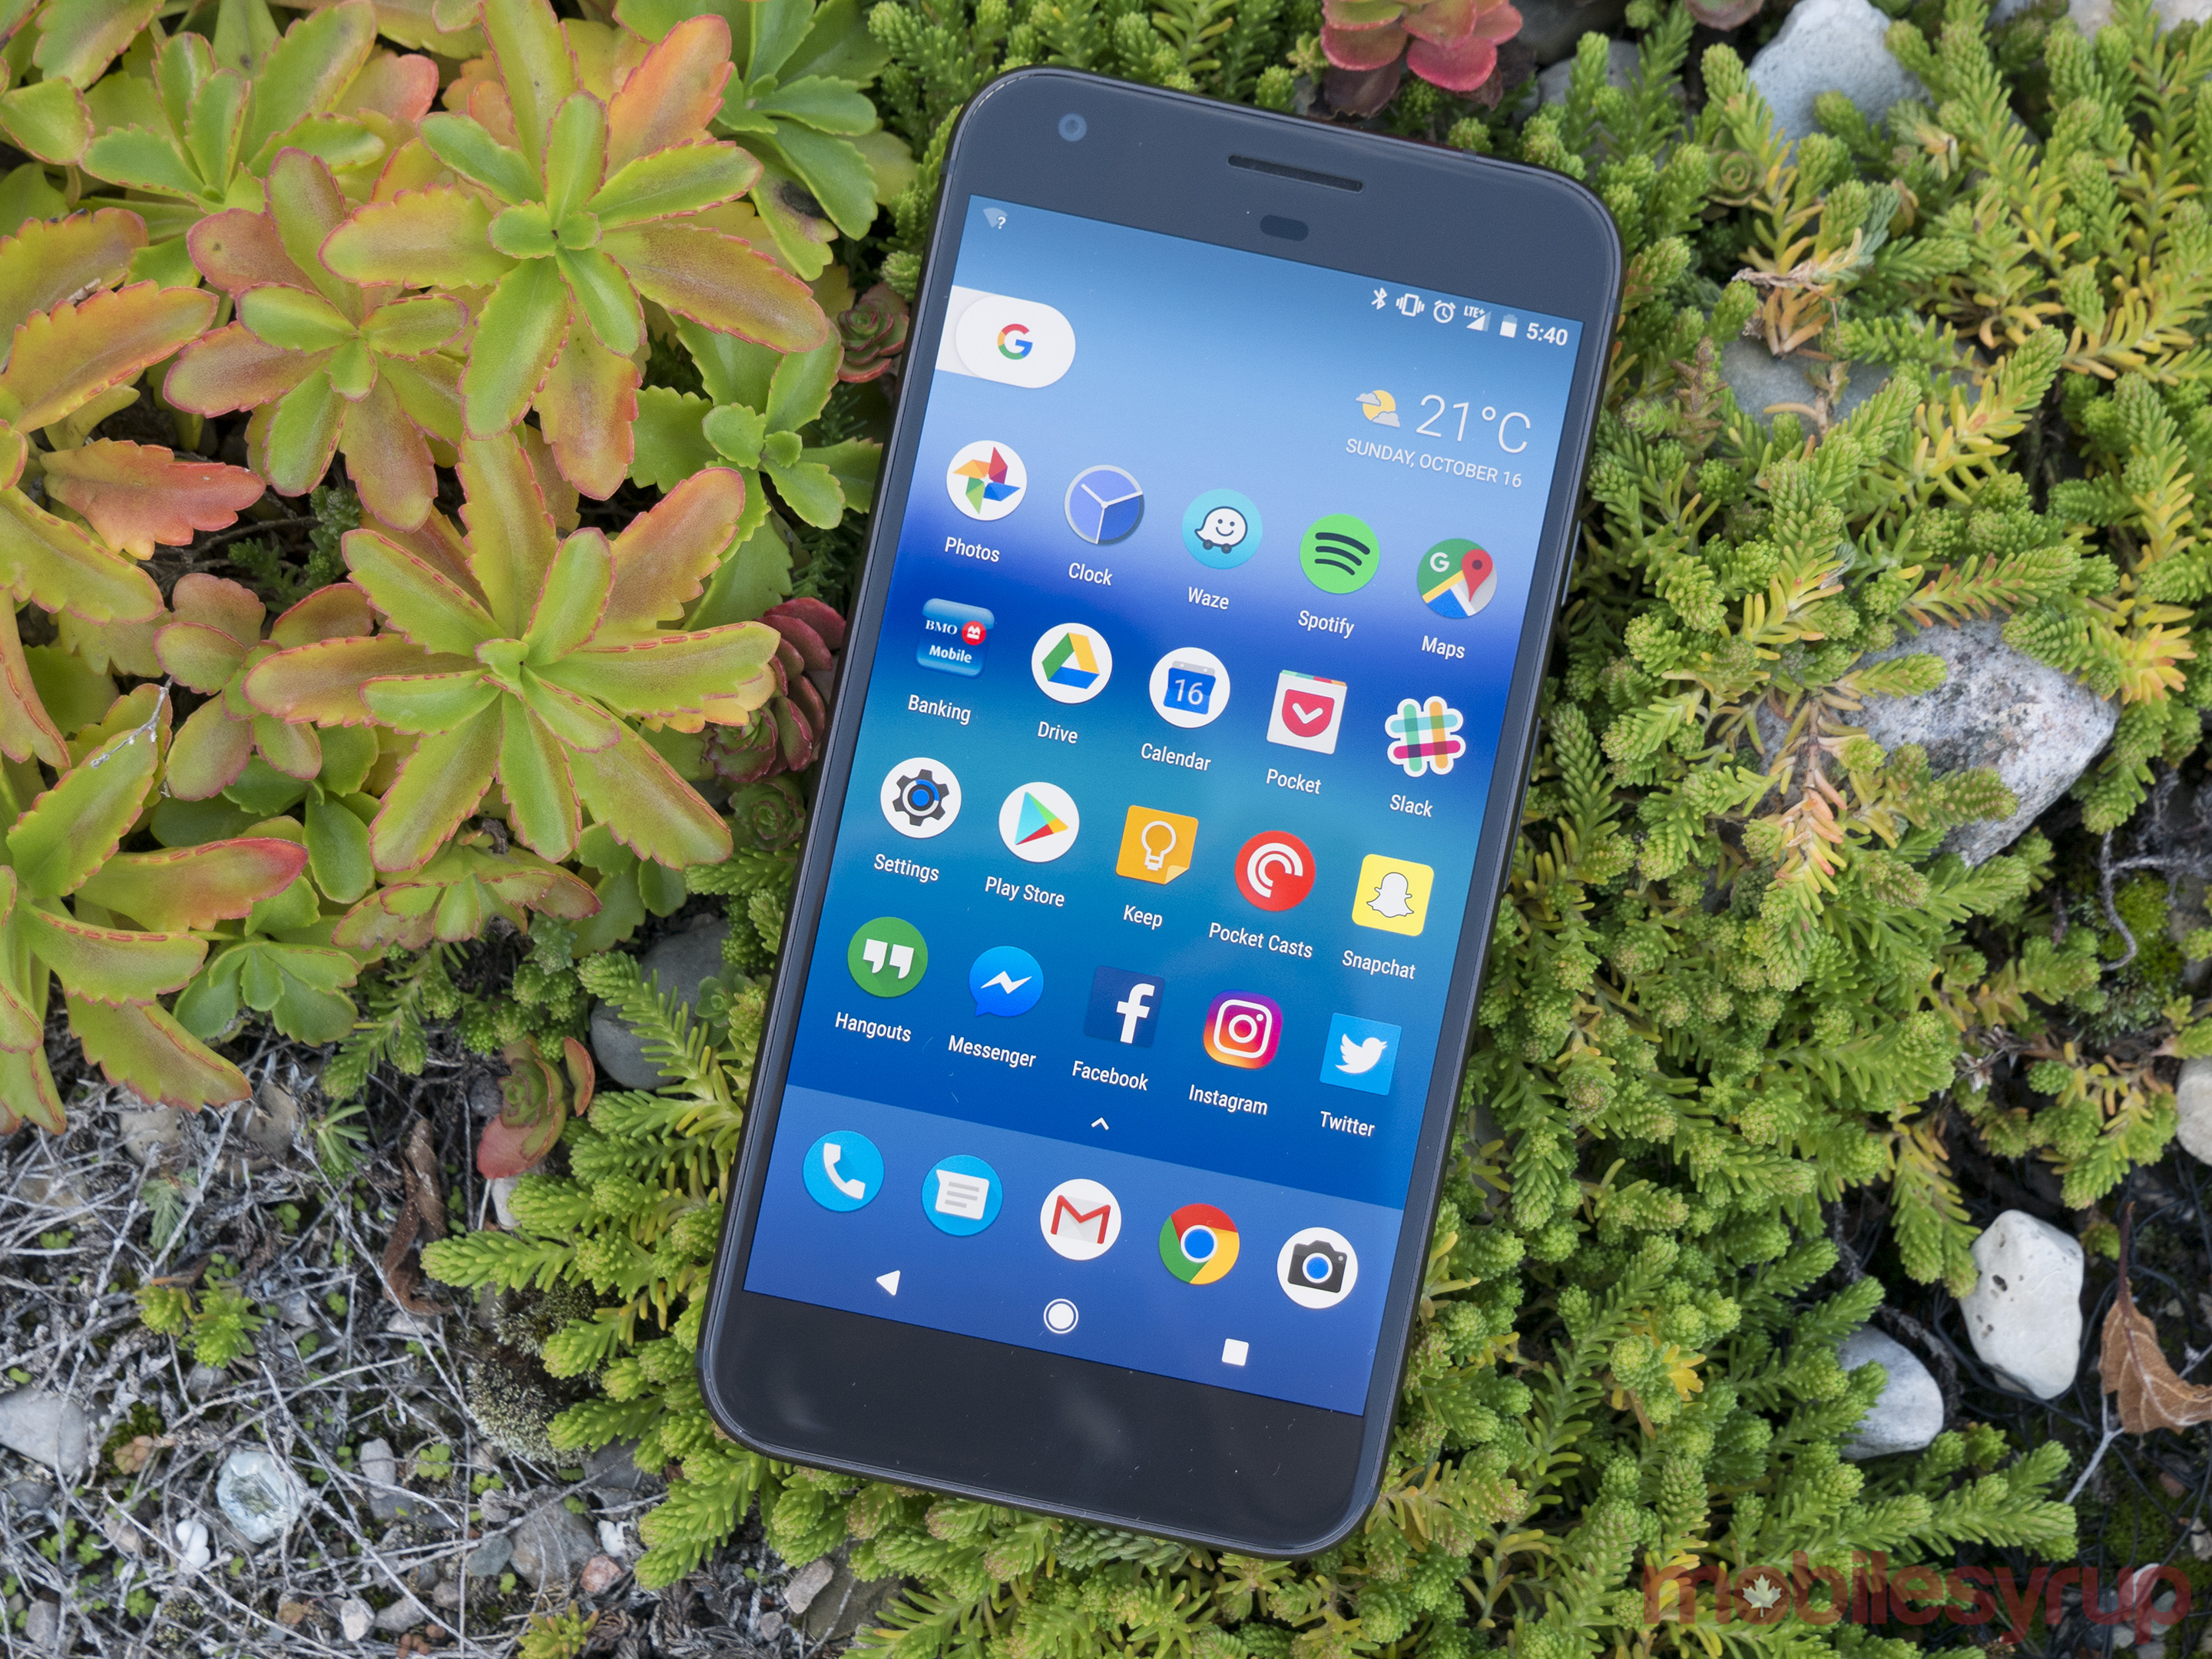 Google's Pixel on pace to outsell Nexus 6P, says report | MobileSyrup